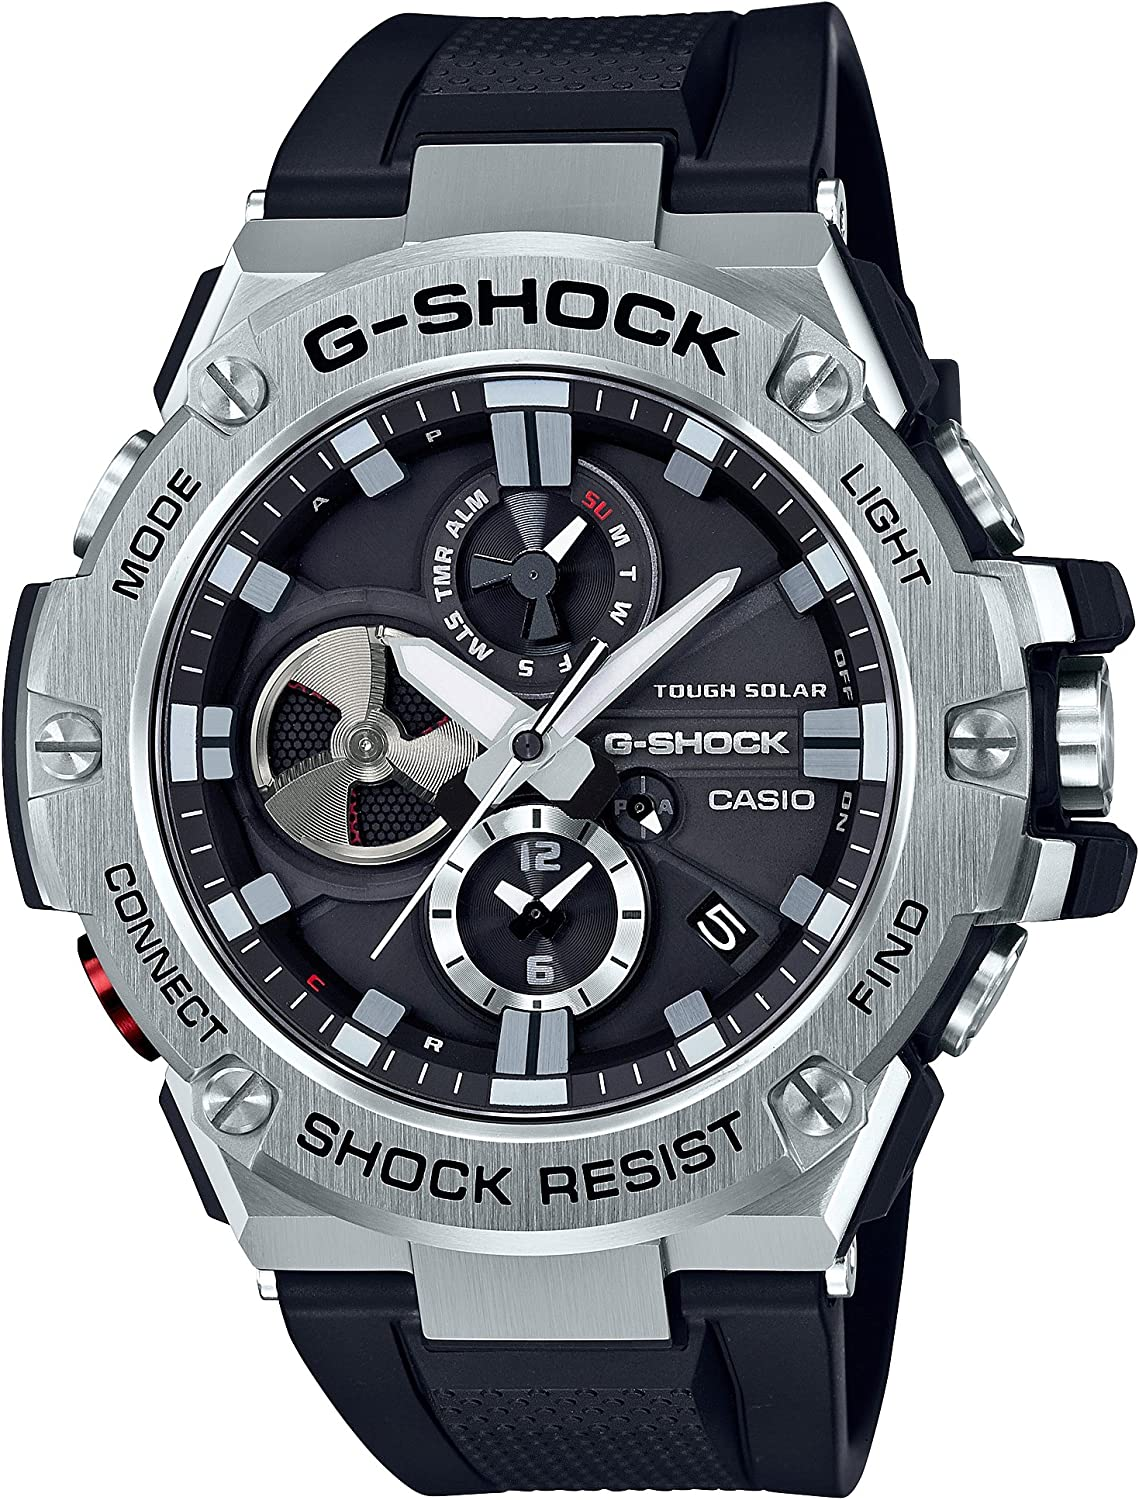 Casio G-Shock G-Steel GST-B100-1AJF Japan Import